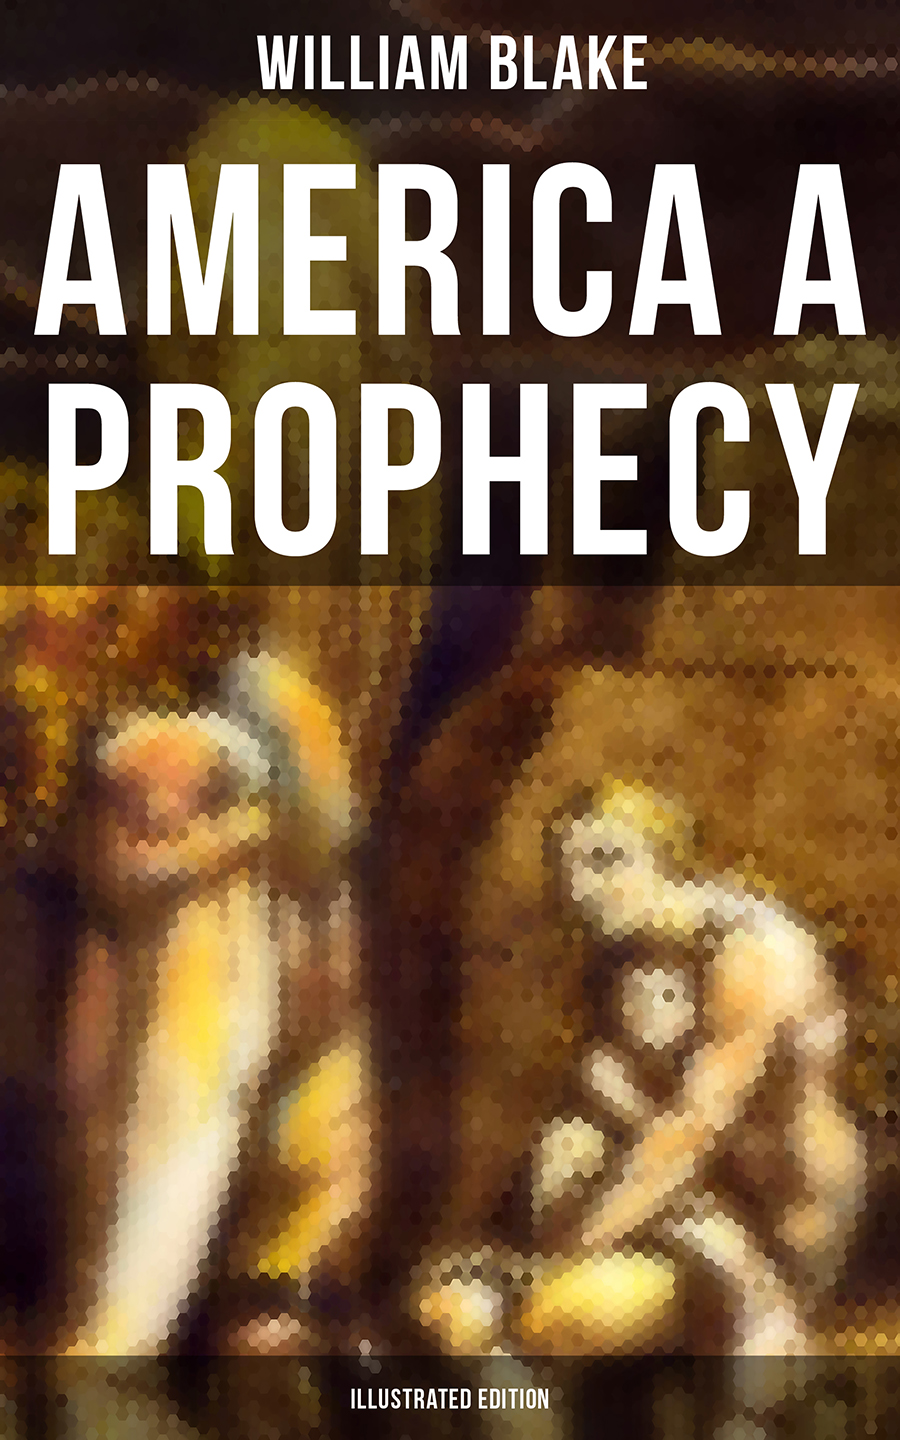 William Blake AMERICA A PROPHECY (Illustrated Edition) cengage learning gale a study guide for william blake s a poison tree